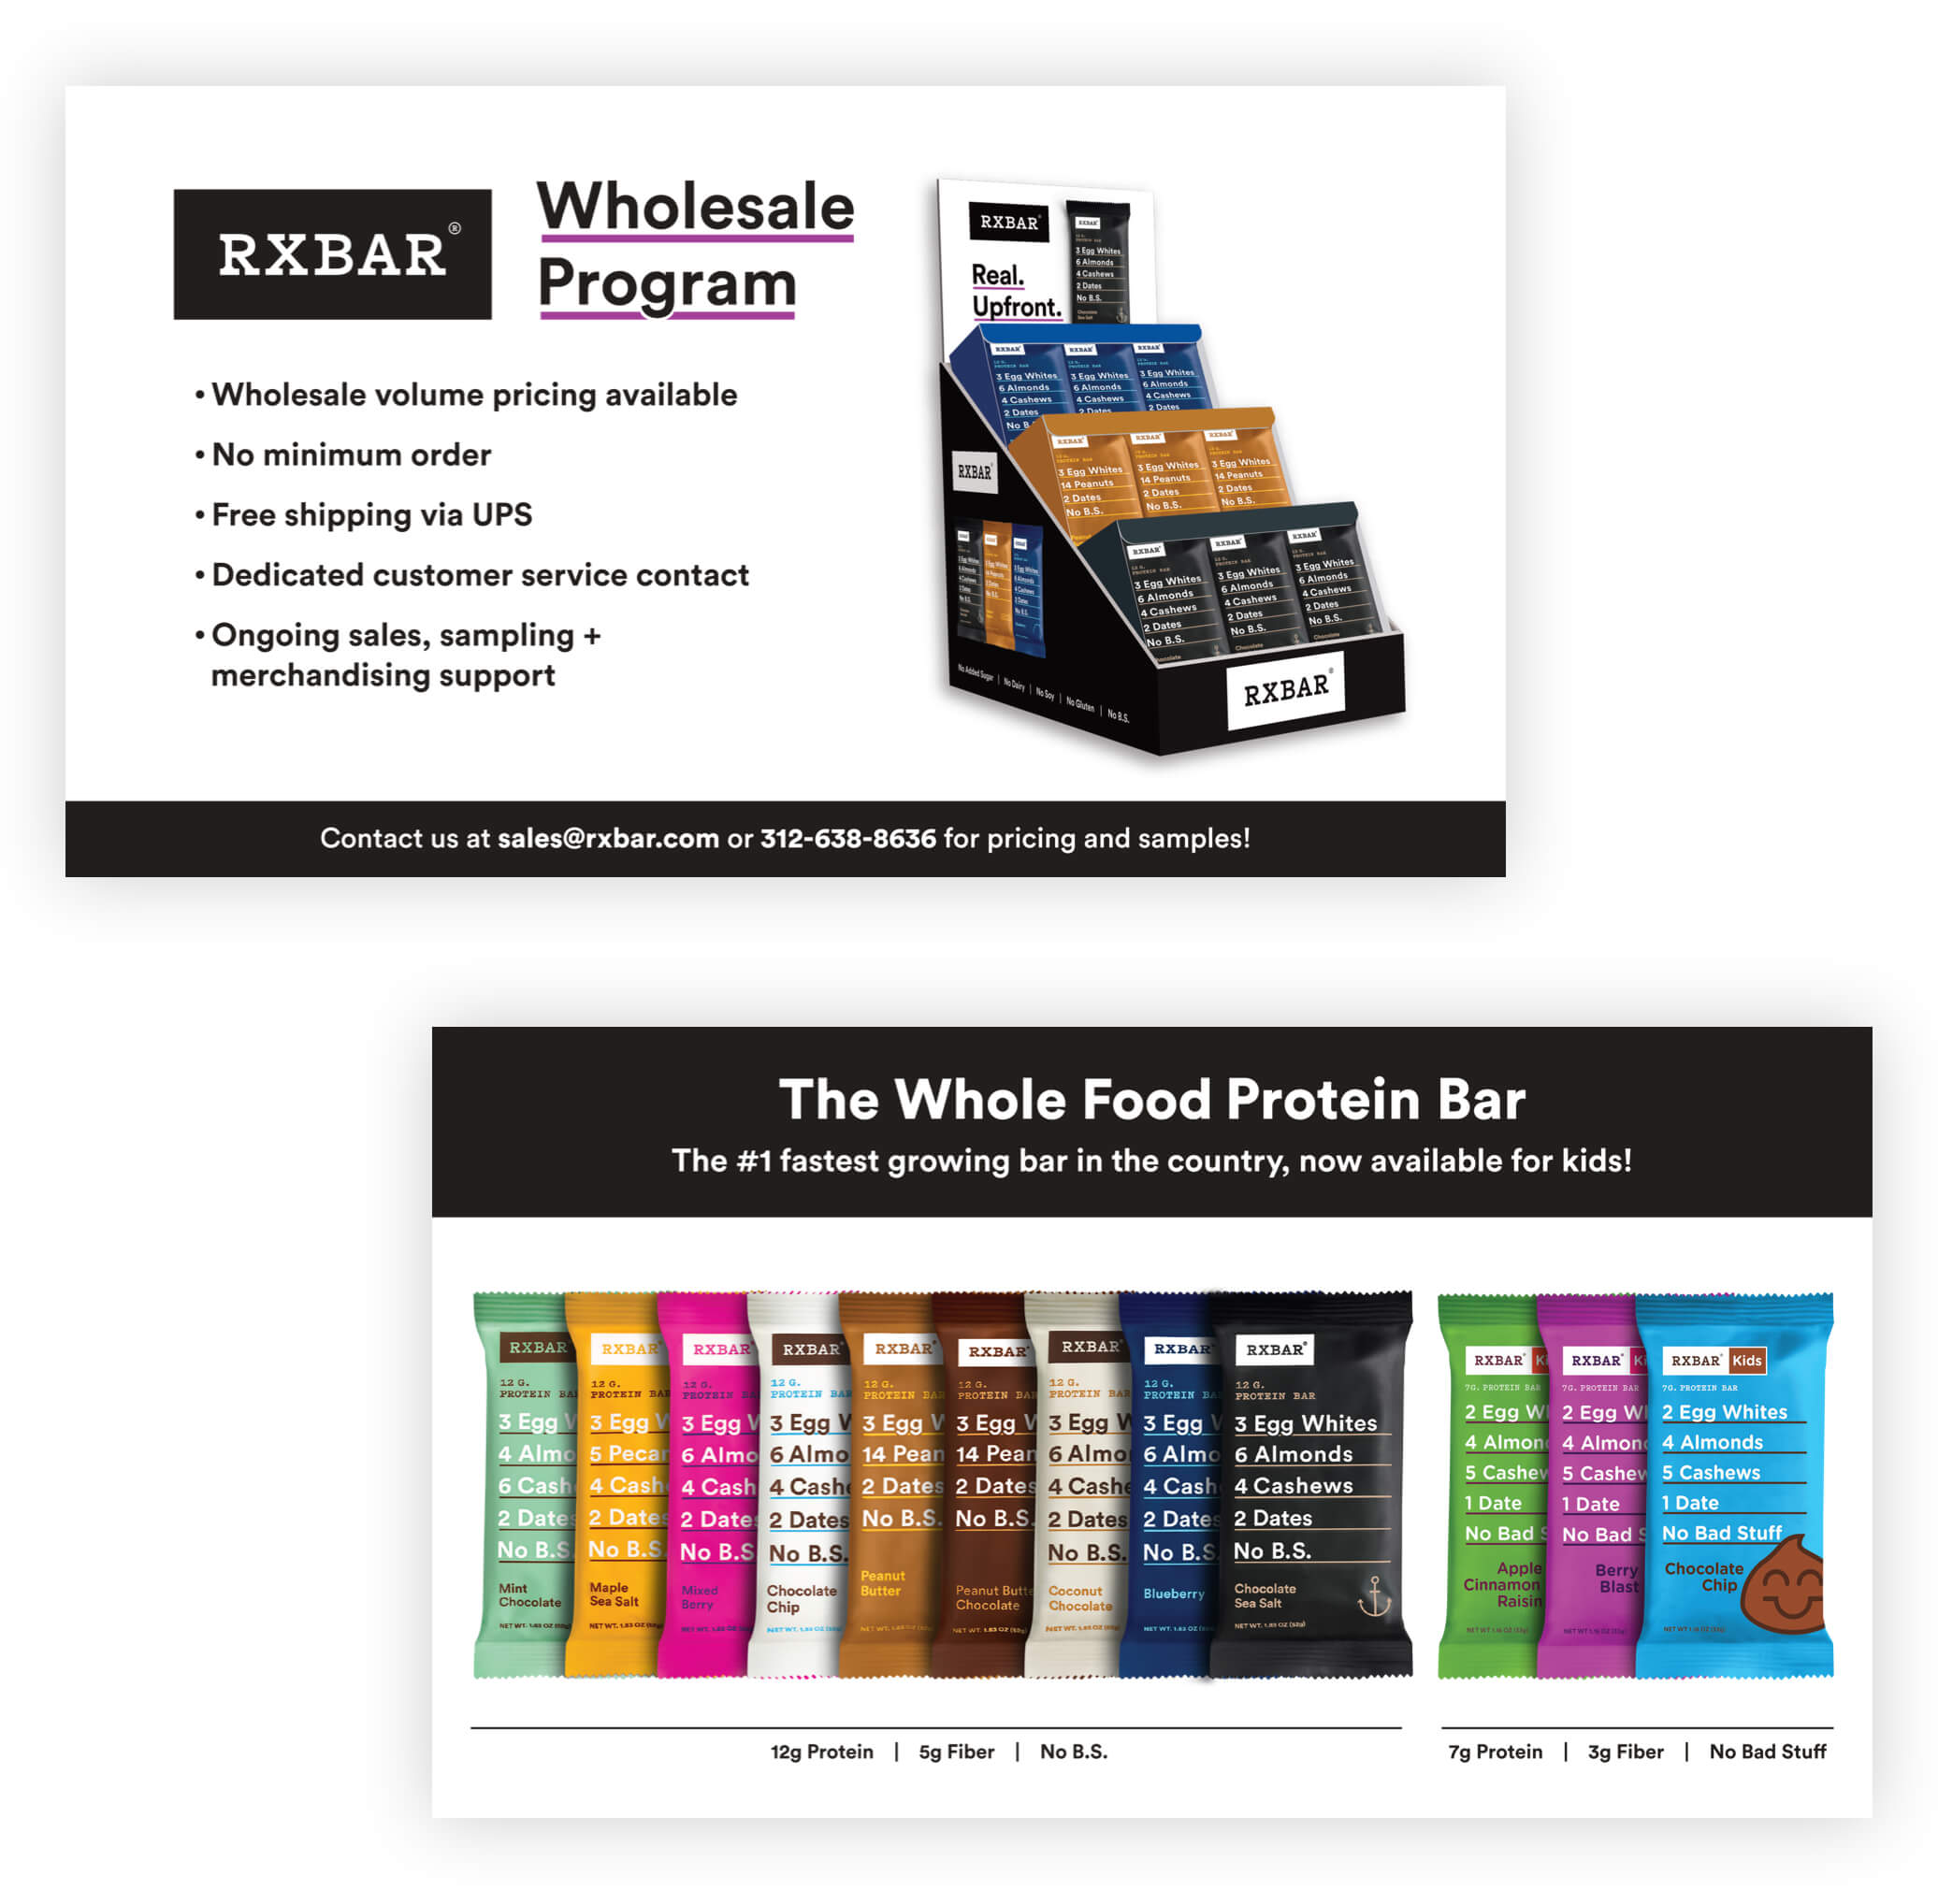 RXBAR Wholesale Program